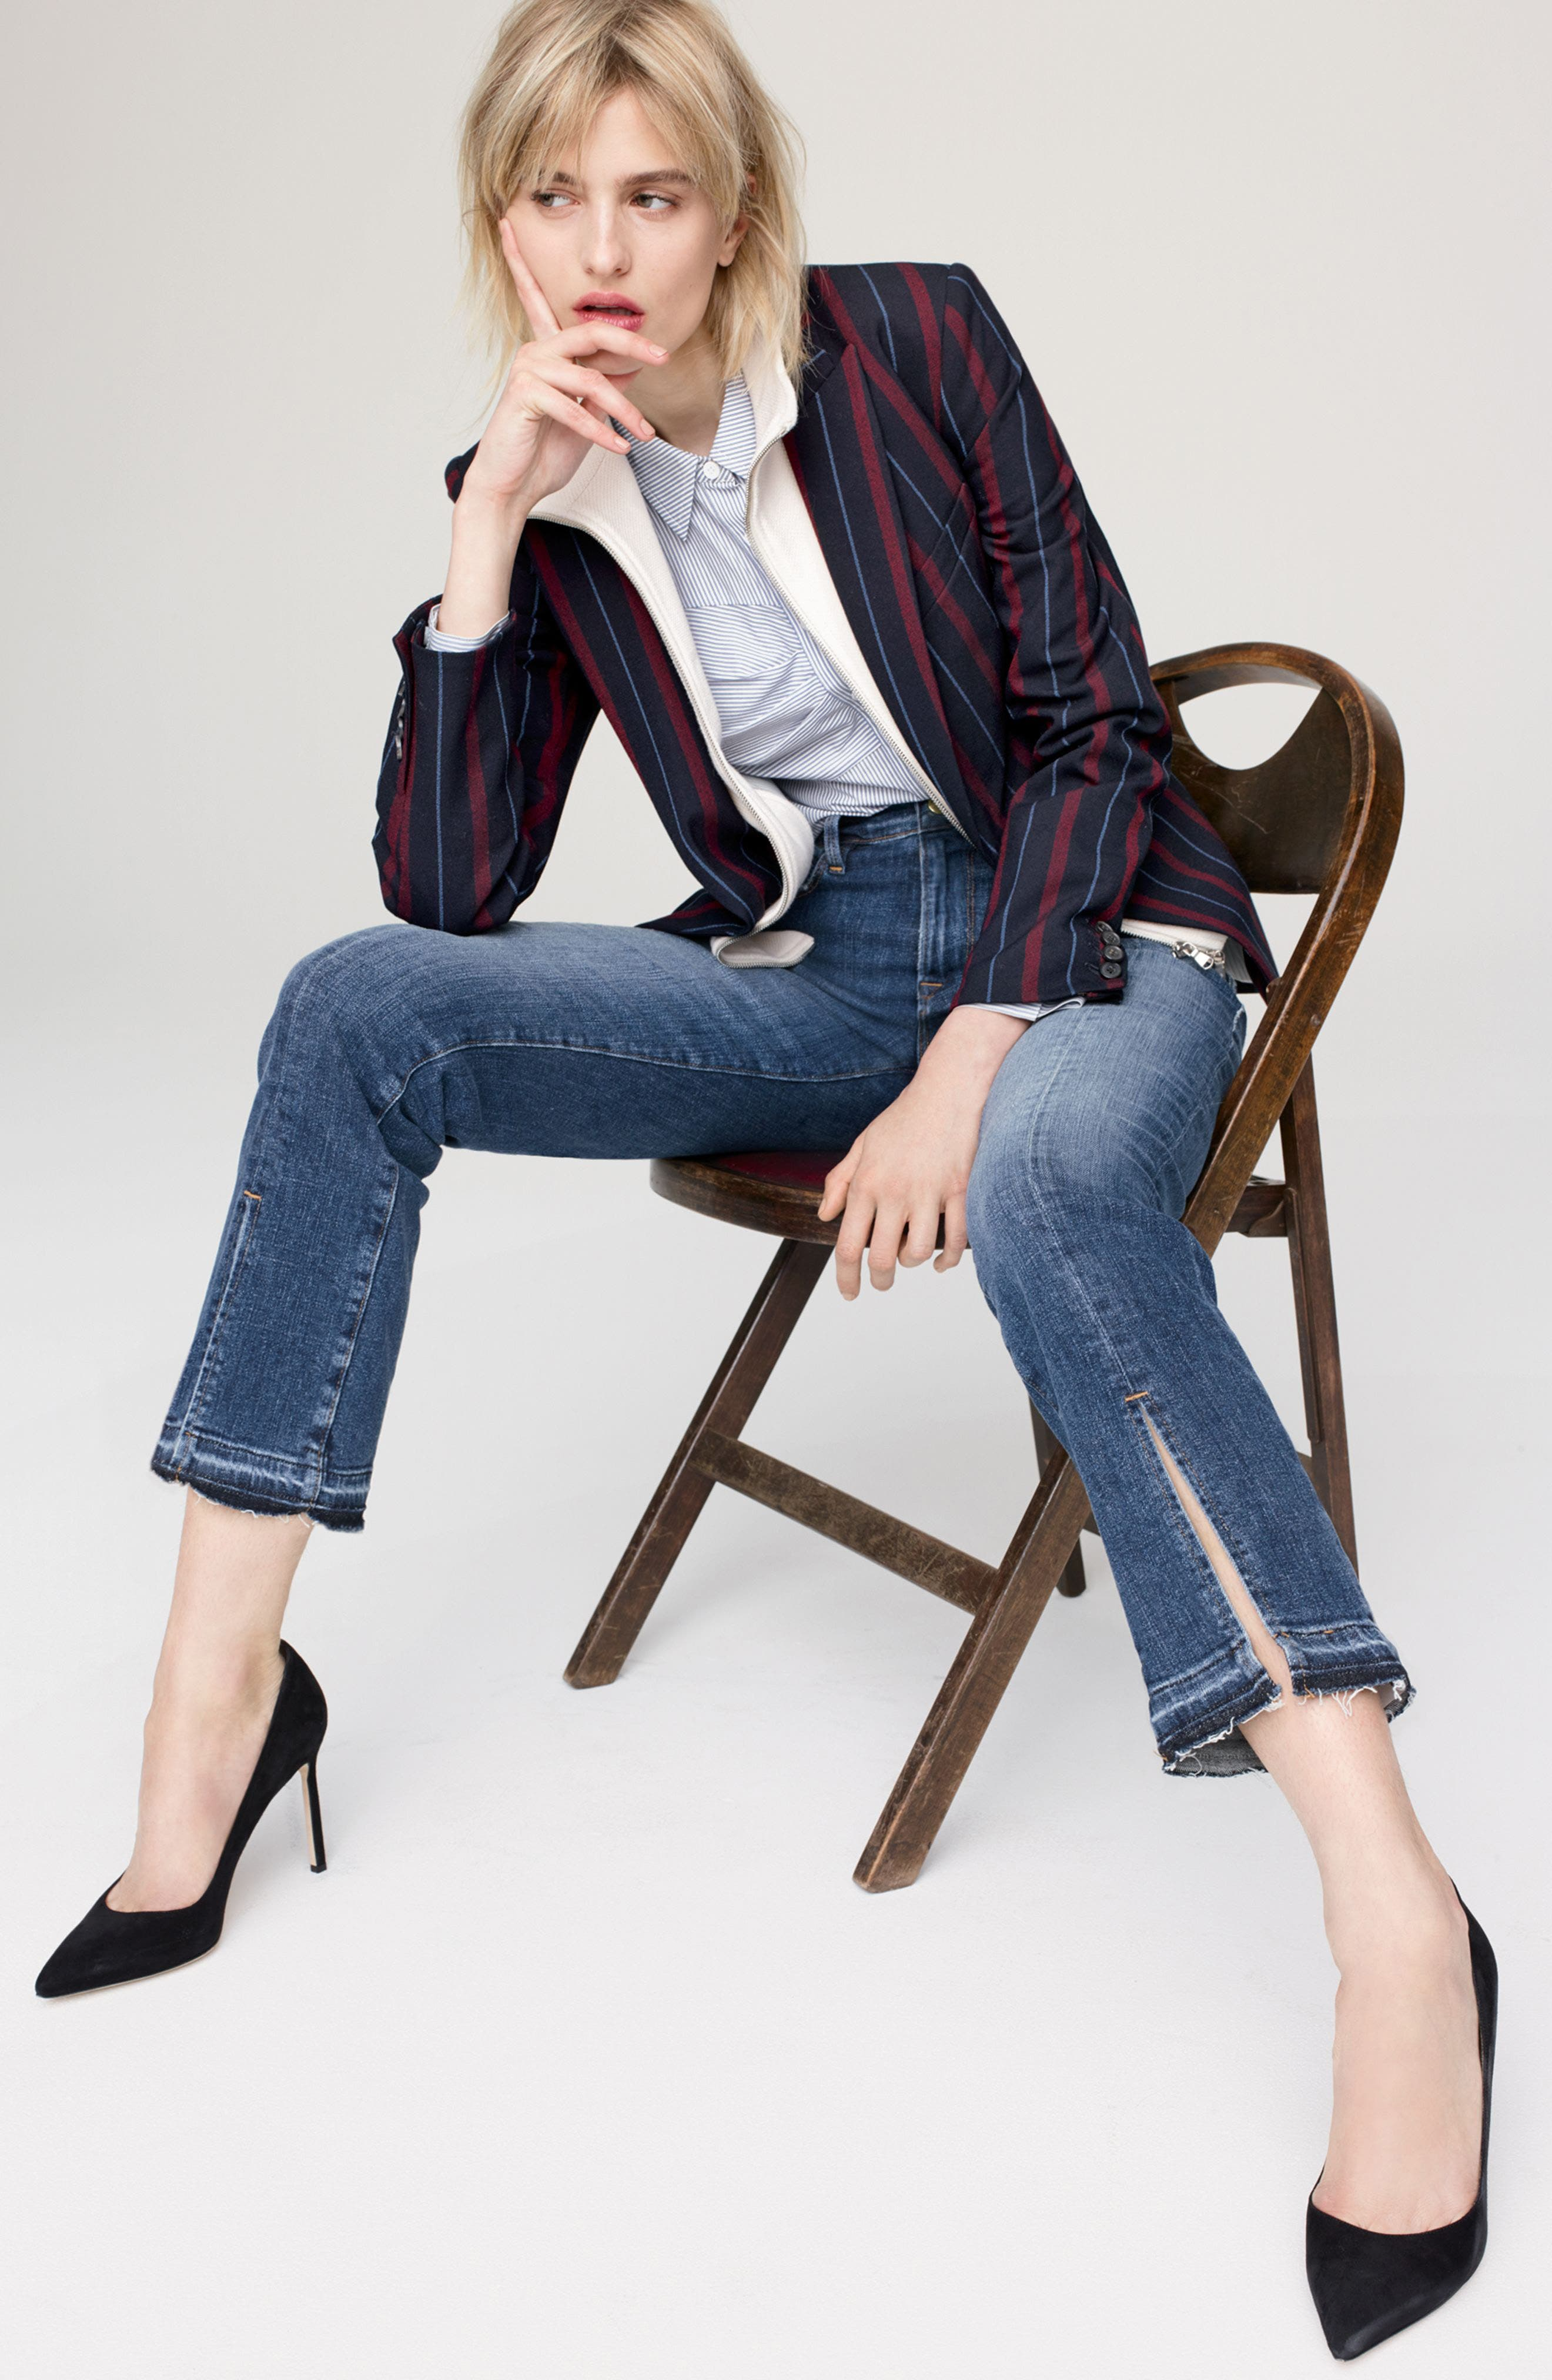 Veronica Beard Jacket, Blouse & FRAME Jeans Outfit with Accessories